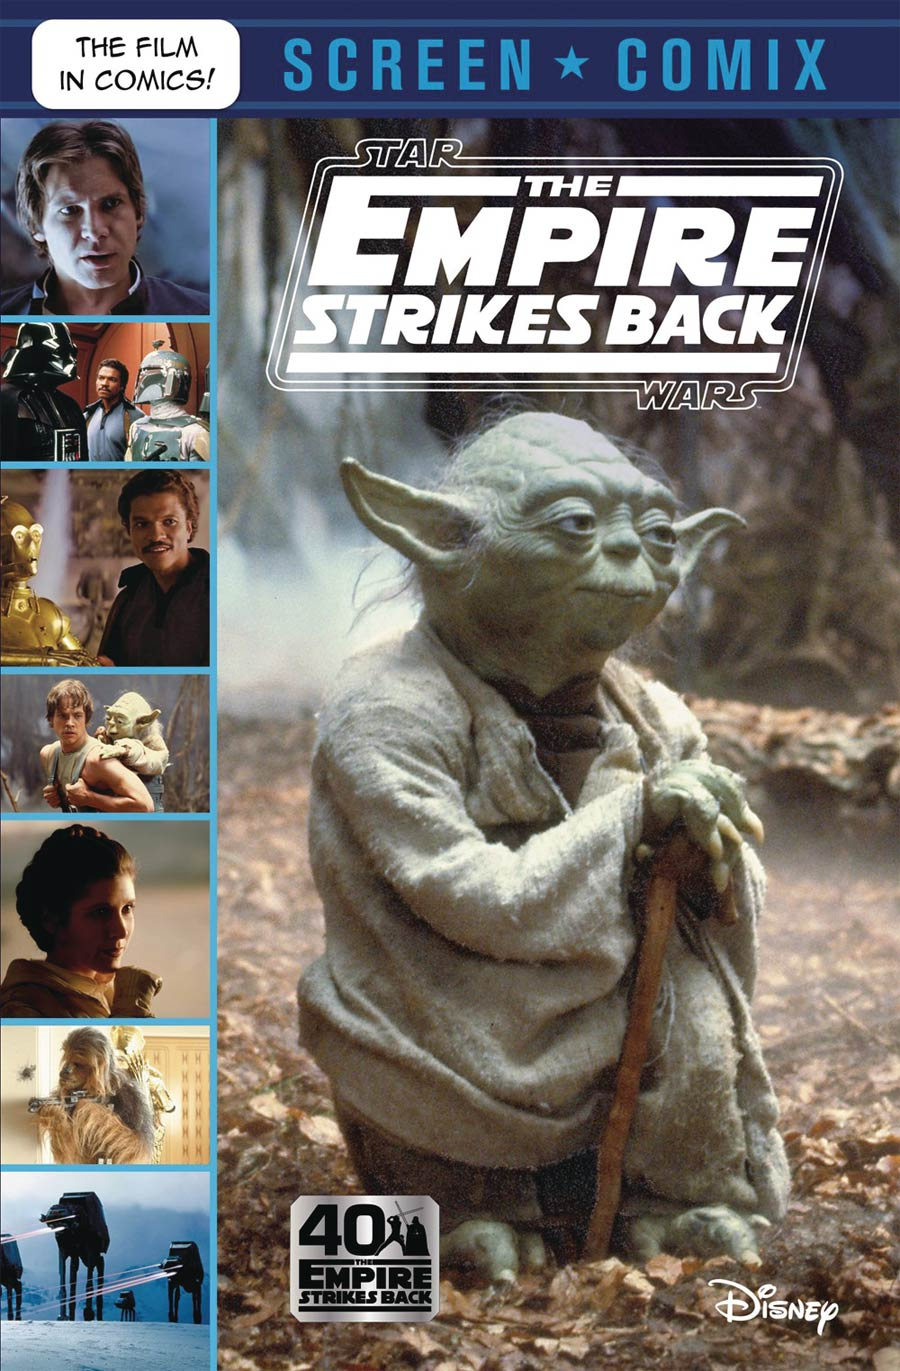 Star Wars The Empire Strikes Back Screen Comix TP